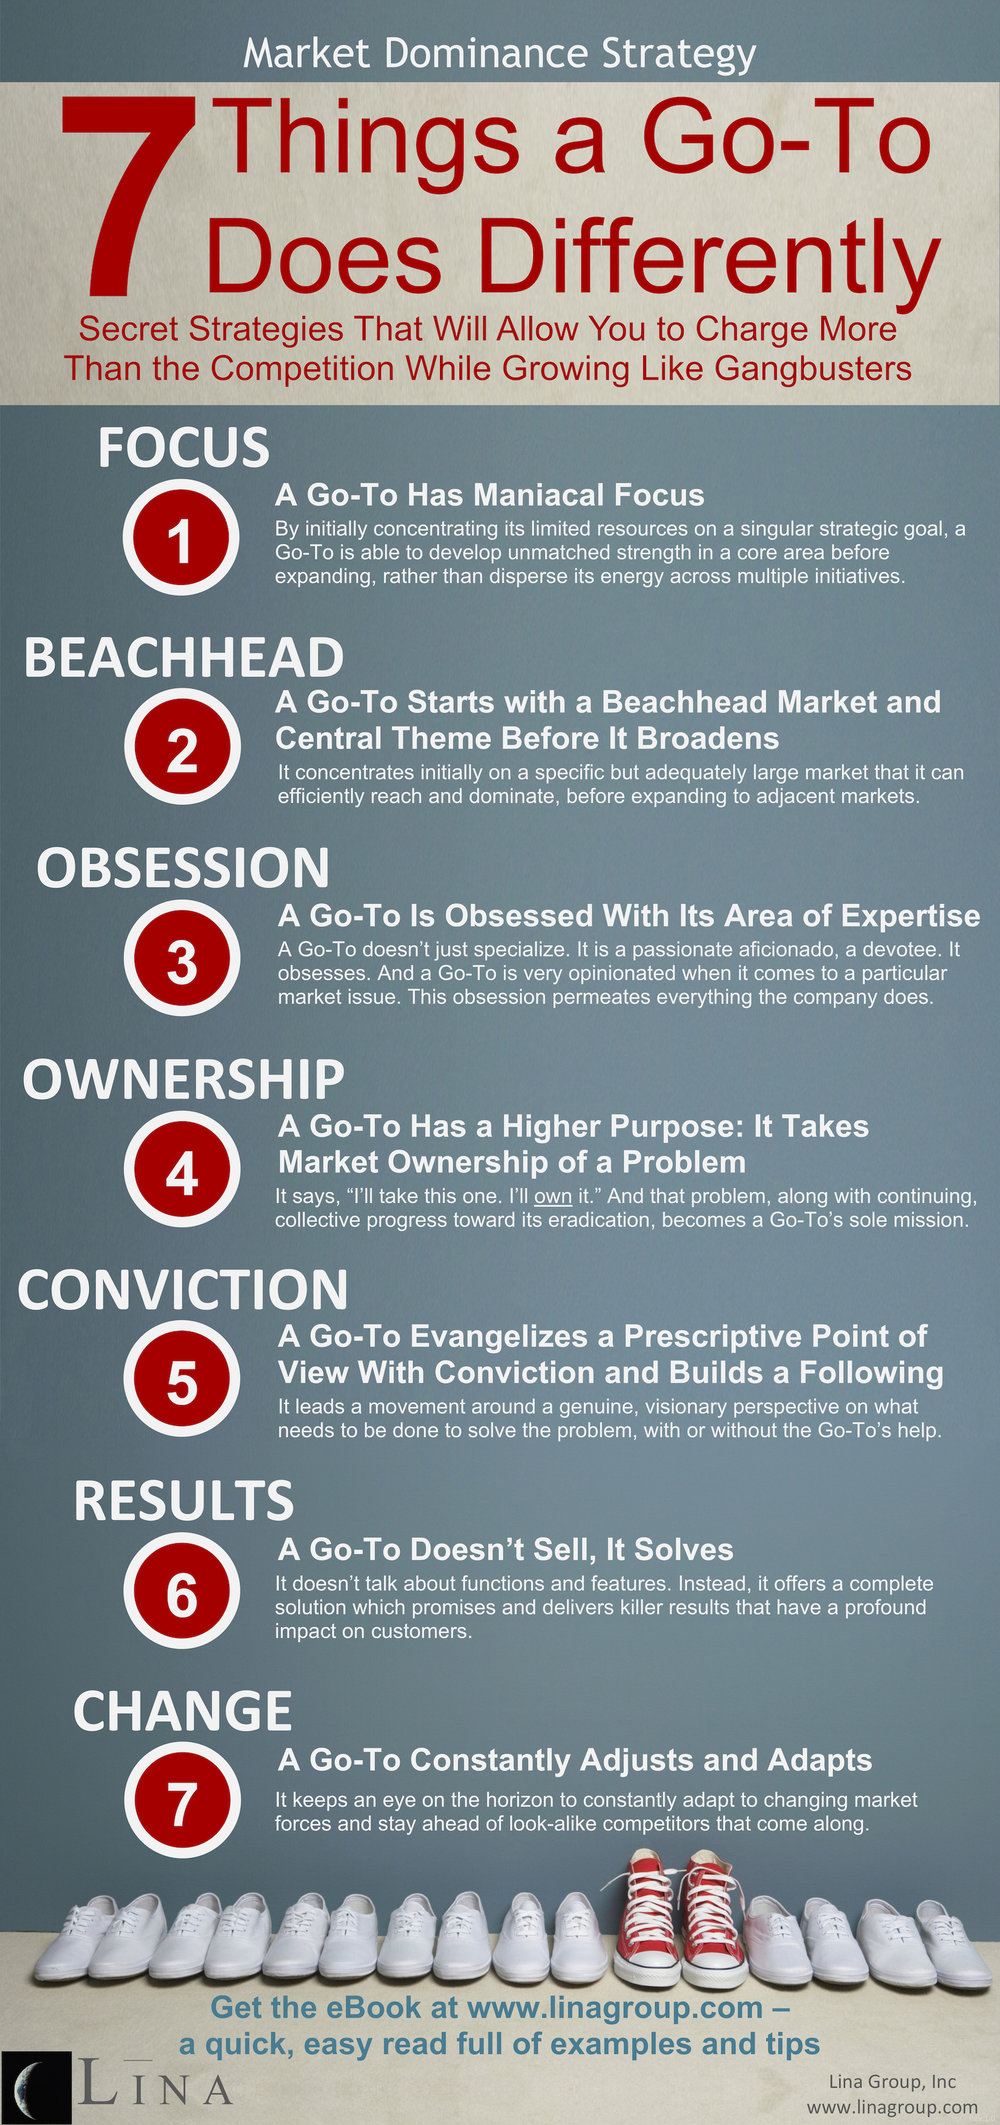 Lina Group Infographic - 7 Things a Go-To Does Differently V3.jpg